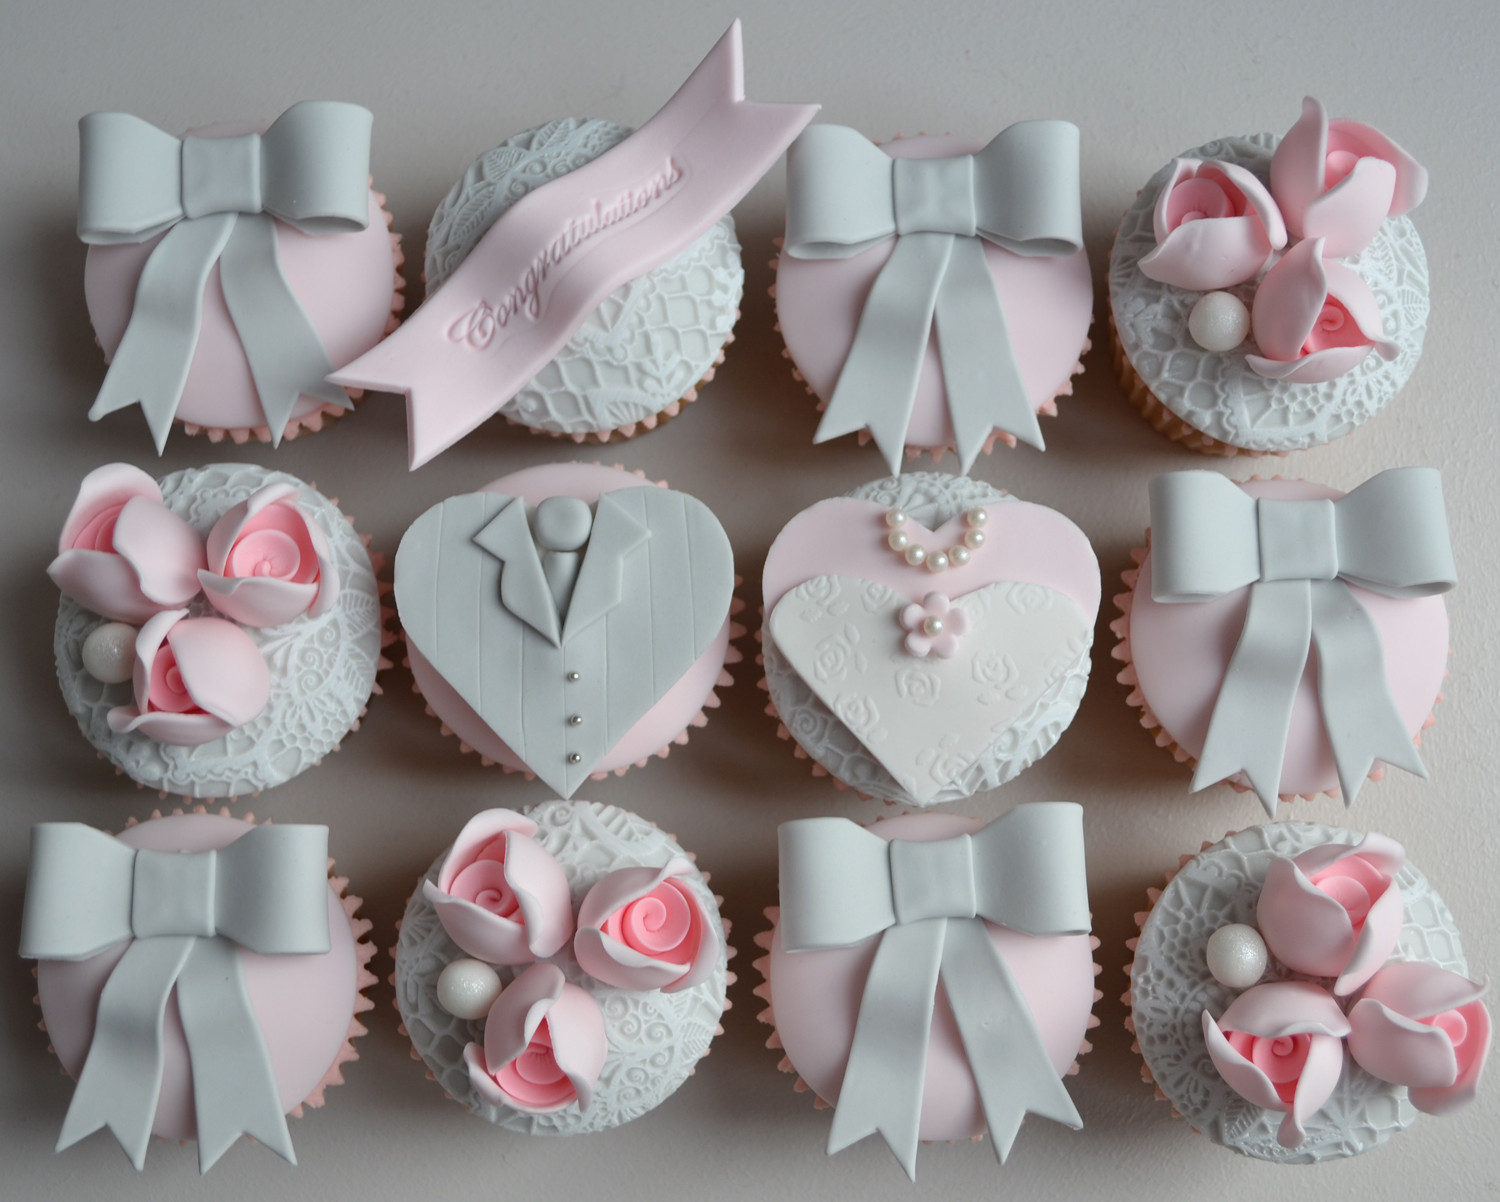 Cupcakes For Wedding  Little Paper Cakes Vintage Wedding Bride and Groom Cupcakes